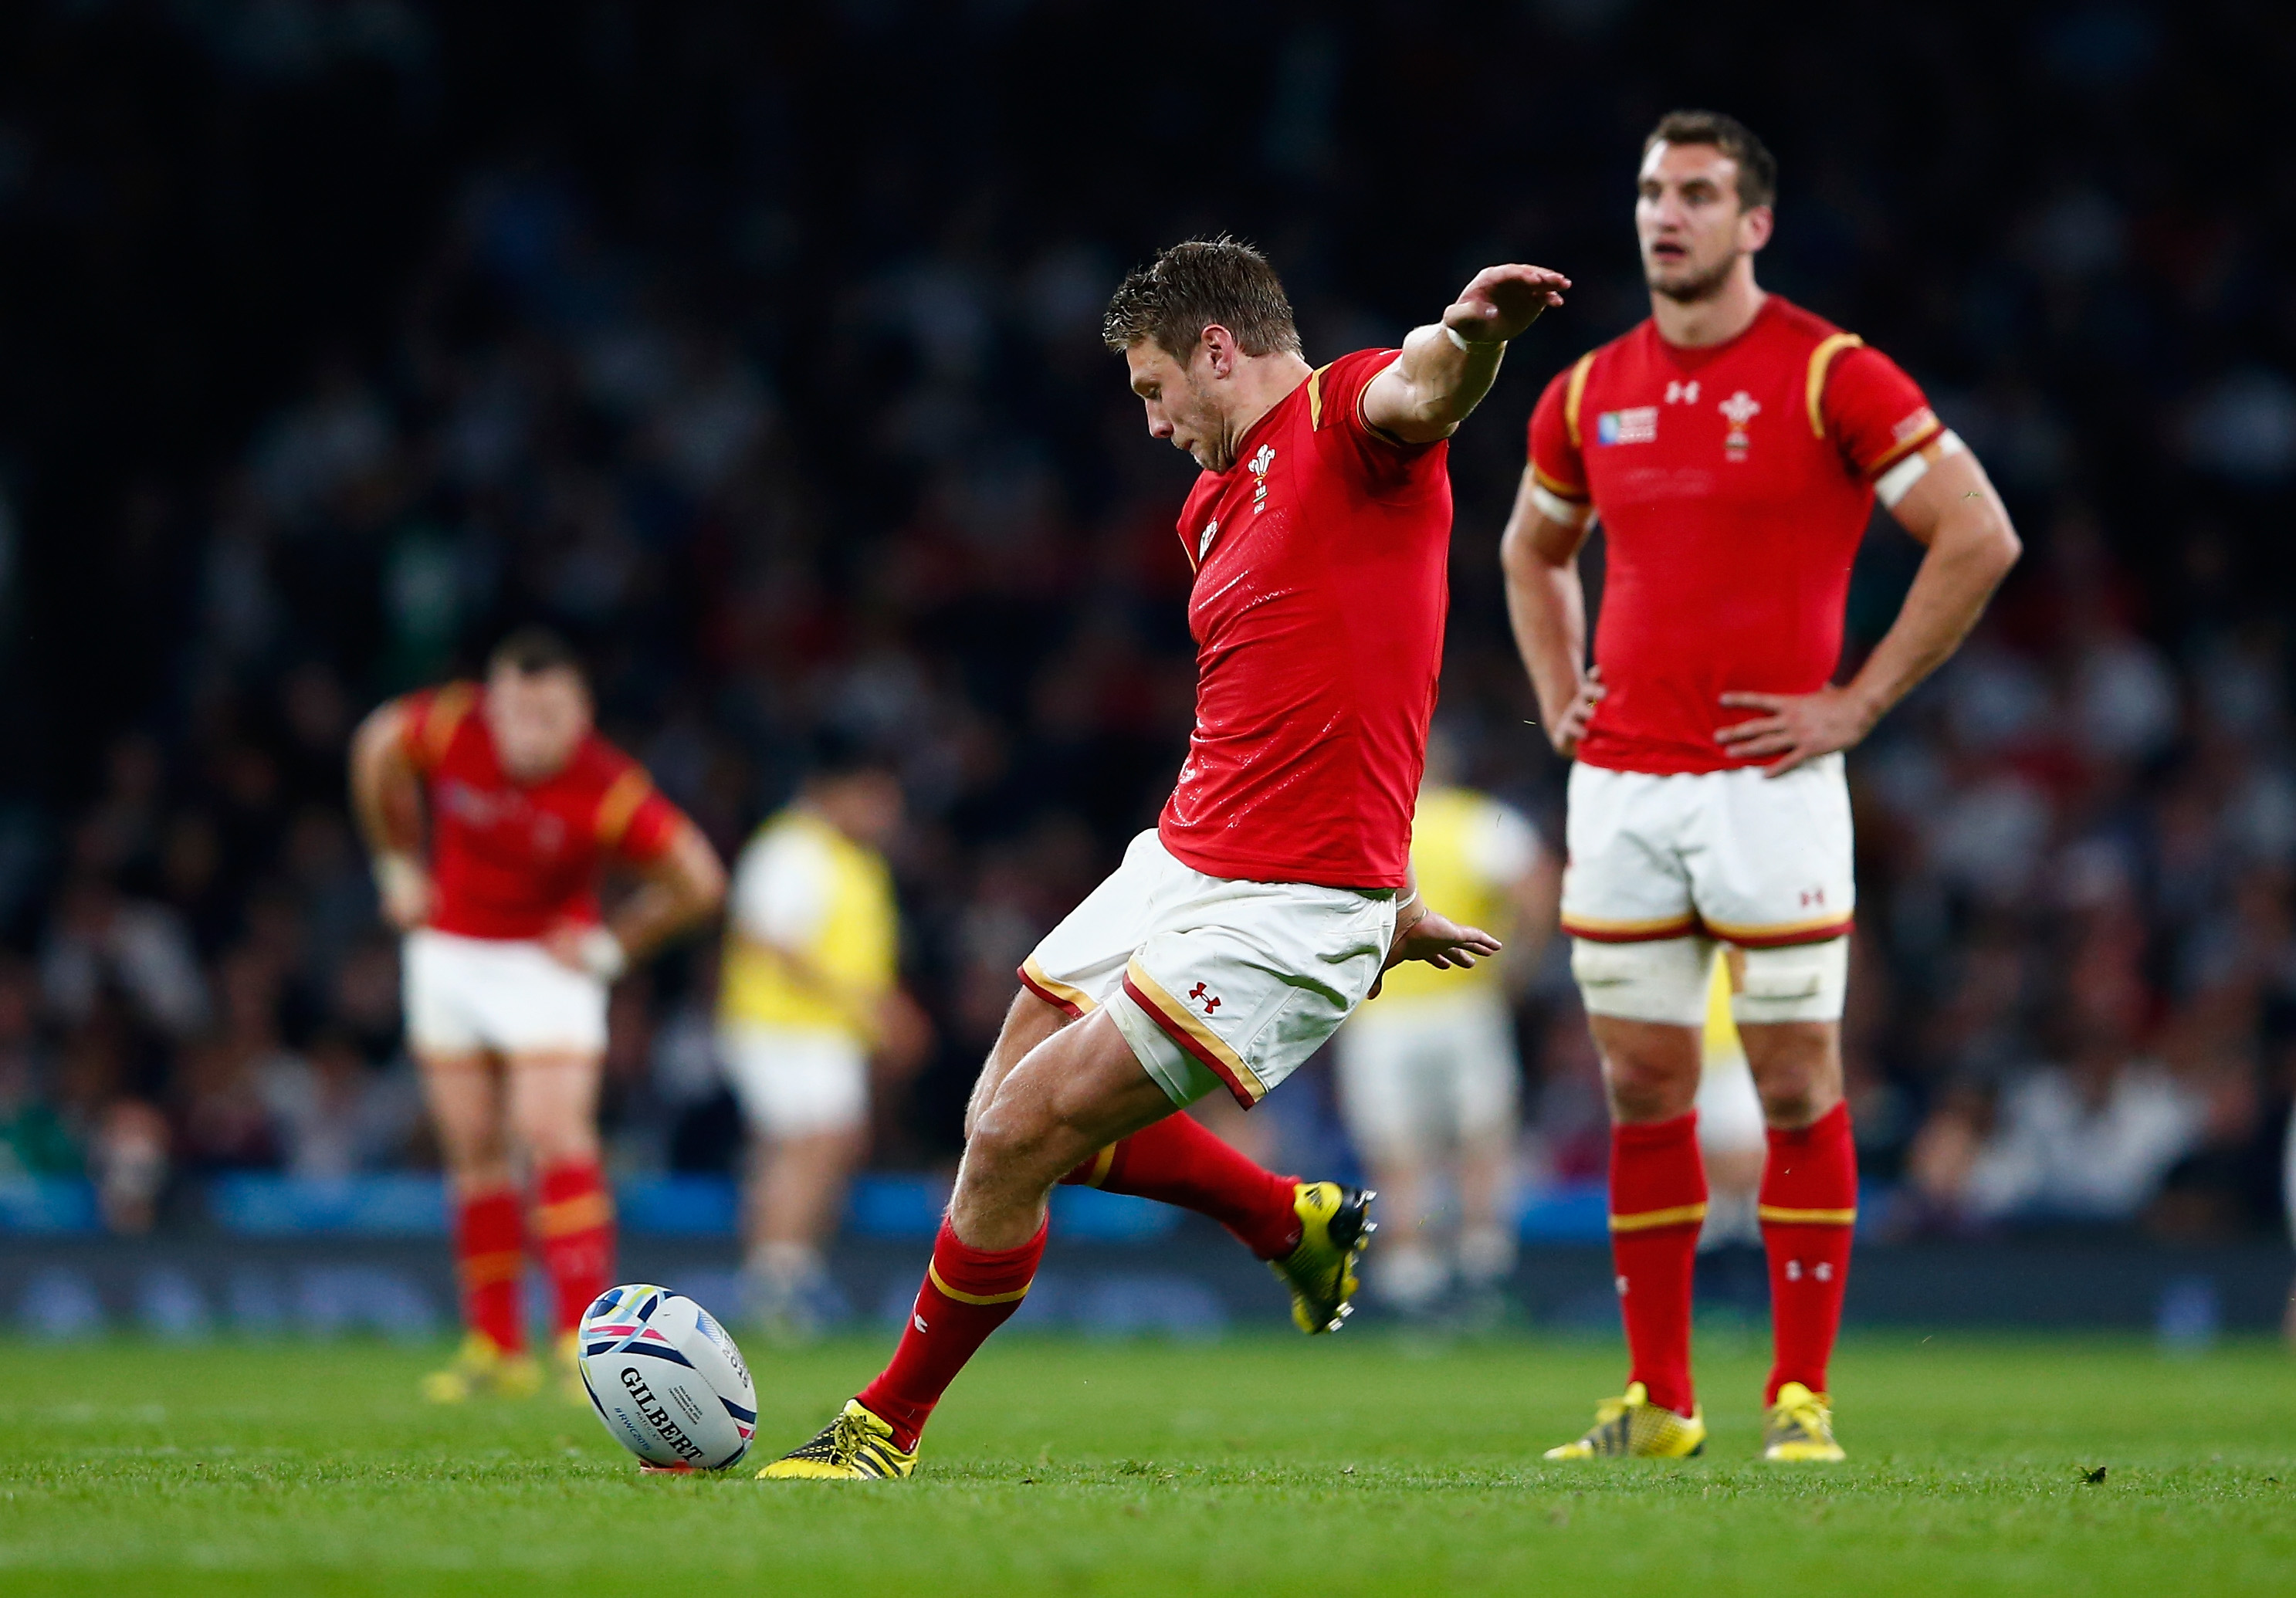 LONDON, ENGLAND - SEPTEMBER 26: Dan Biggar of Wales kicks a penalty during the 2015 Rugby World Cup Pool A match between England and Wales at Twickenham Stadium on September 26, 2015 in London, United Kingdom. (Photo by Shaun Botterill/Getty Images)